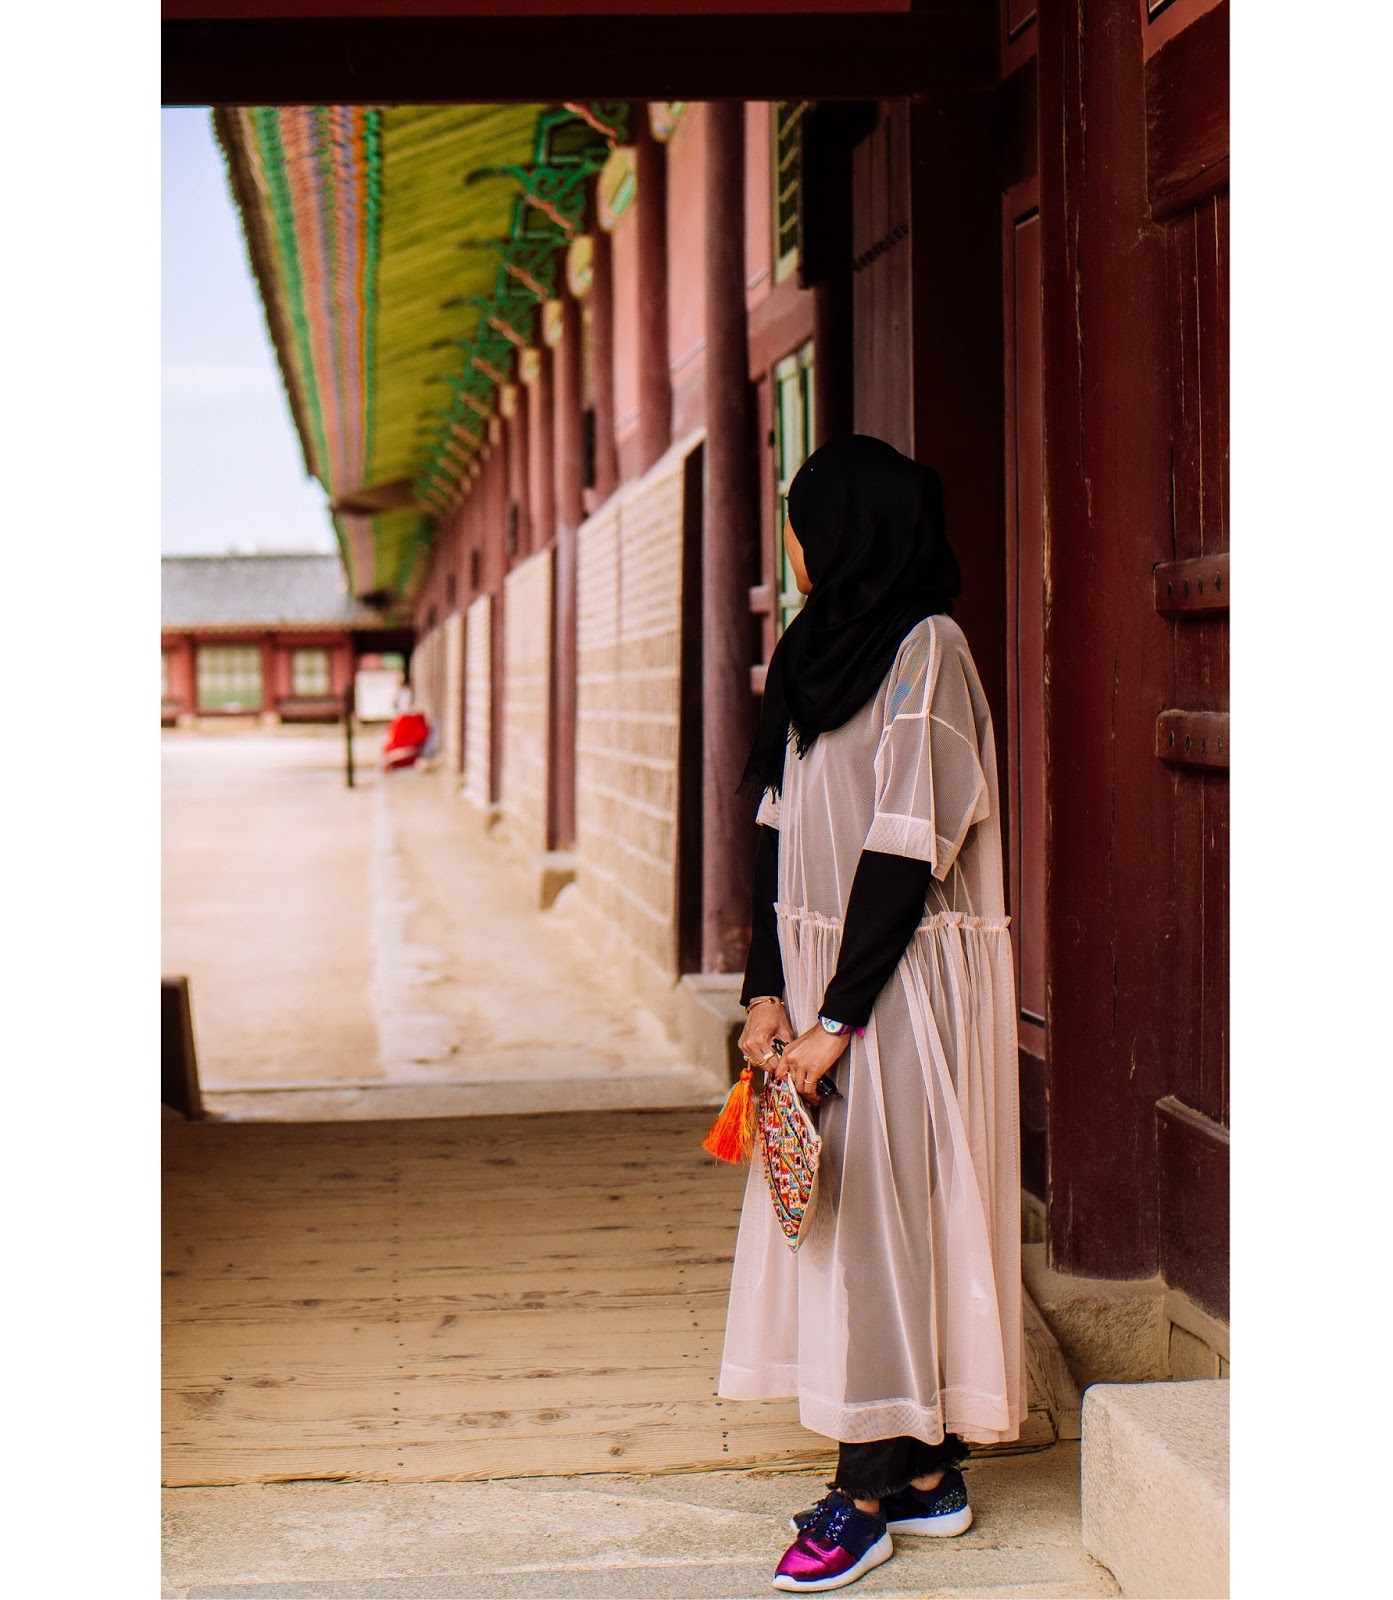 Peach Mesh Dress Colourful Bohemian Clutch Gyeongbokgung Palace Seoul